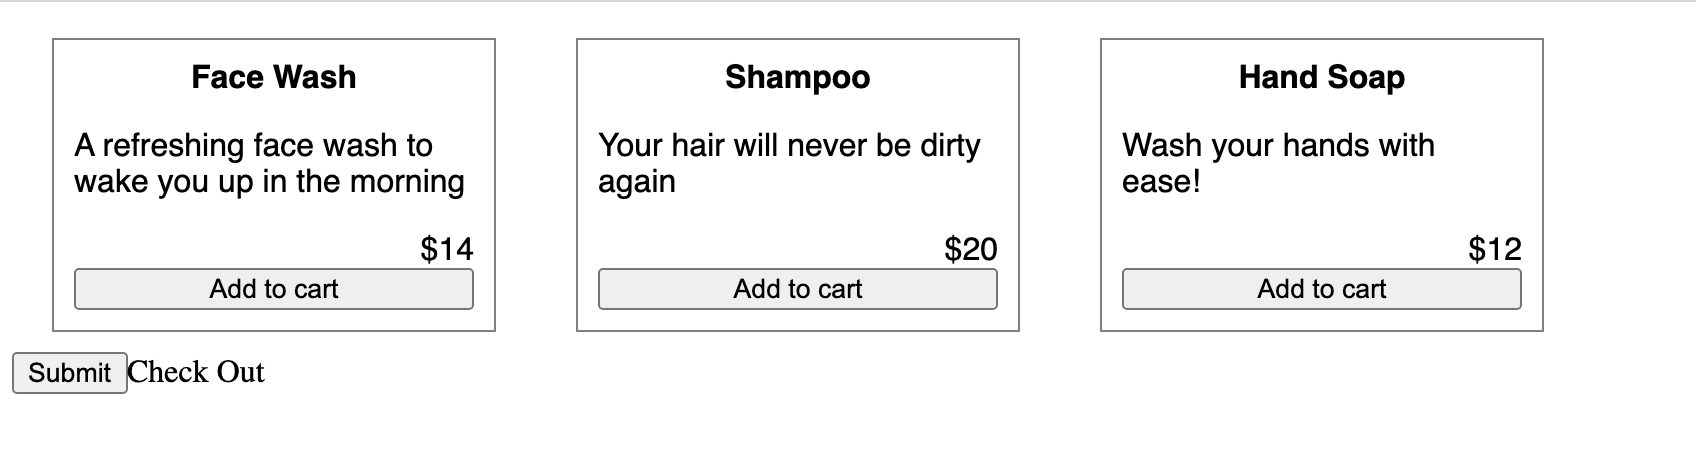 Screenshot of basic product page displaying three item names and descriptions: Face Wash, Shampoo, Hand Soap